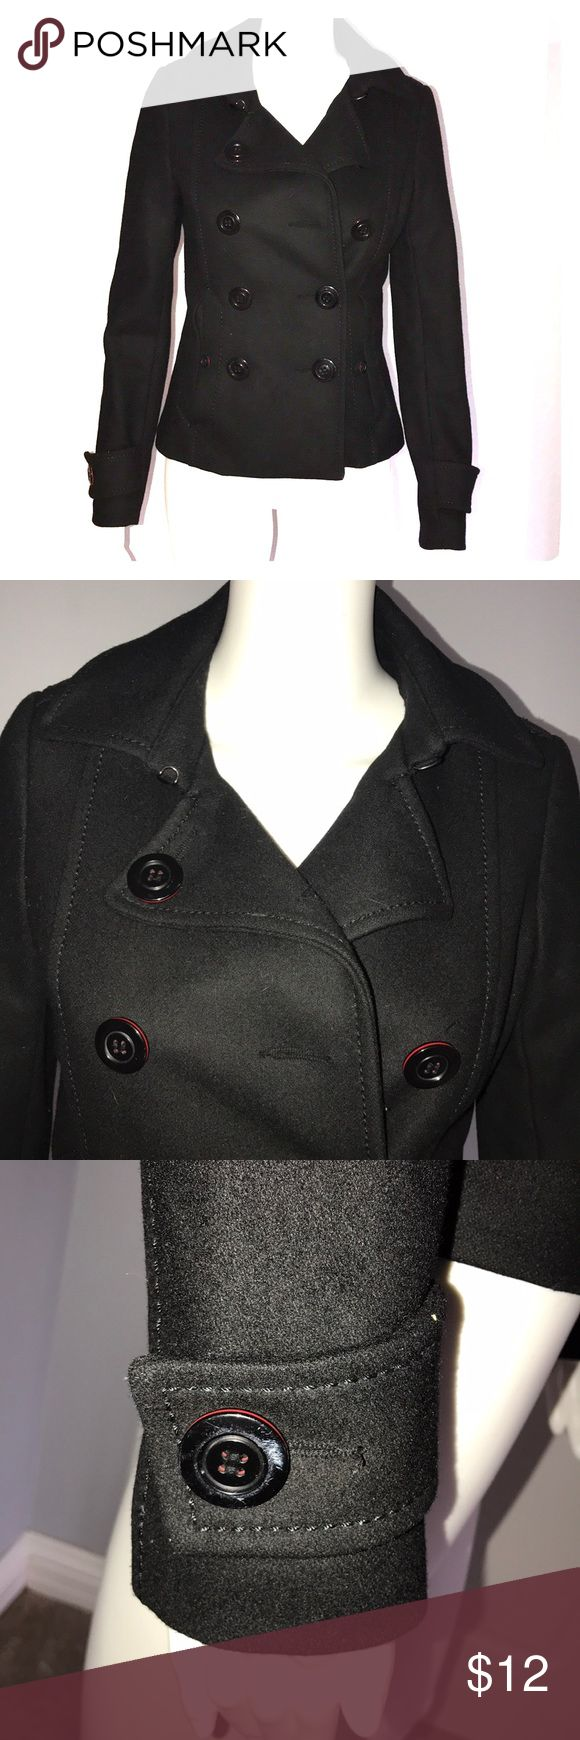 Divided Black Pea Coat Shell - 60% Wool, 30% Viscose, 10% Polyester  Lining - 100% Polyester Buttons have a thin red outline Comes with extra buttons Super cute!! Divided Jackets & Coats Pea Coats